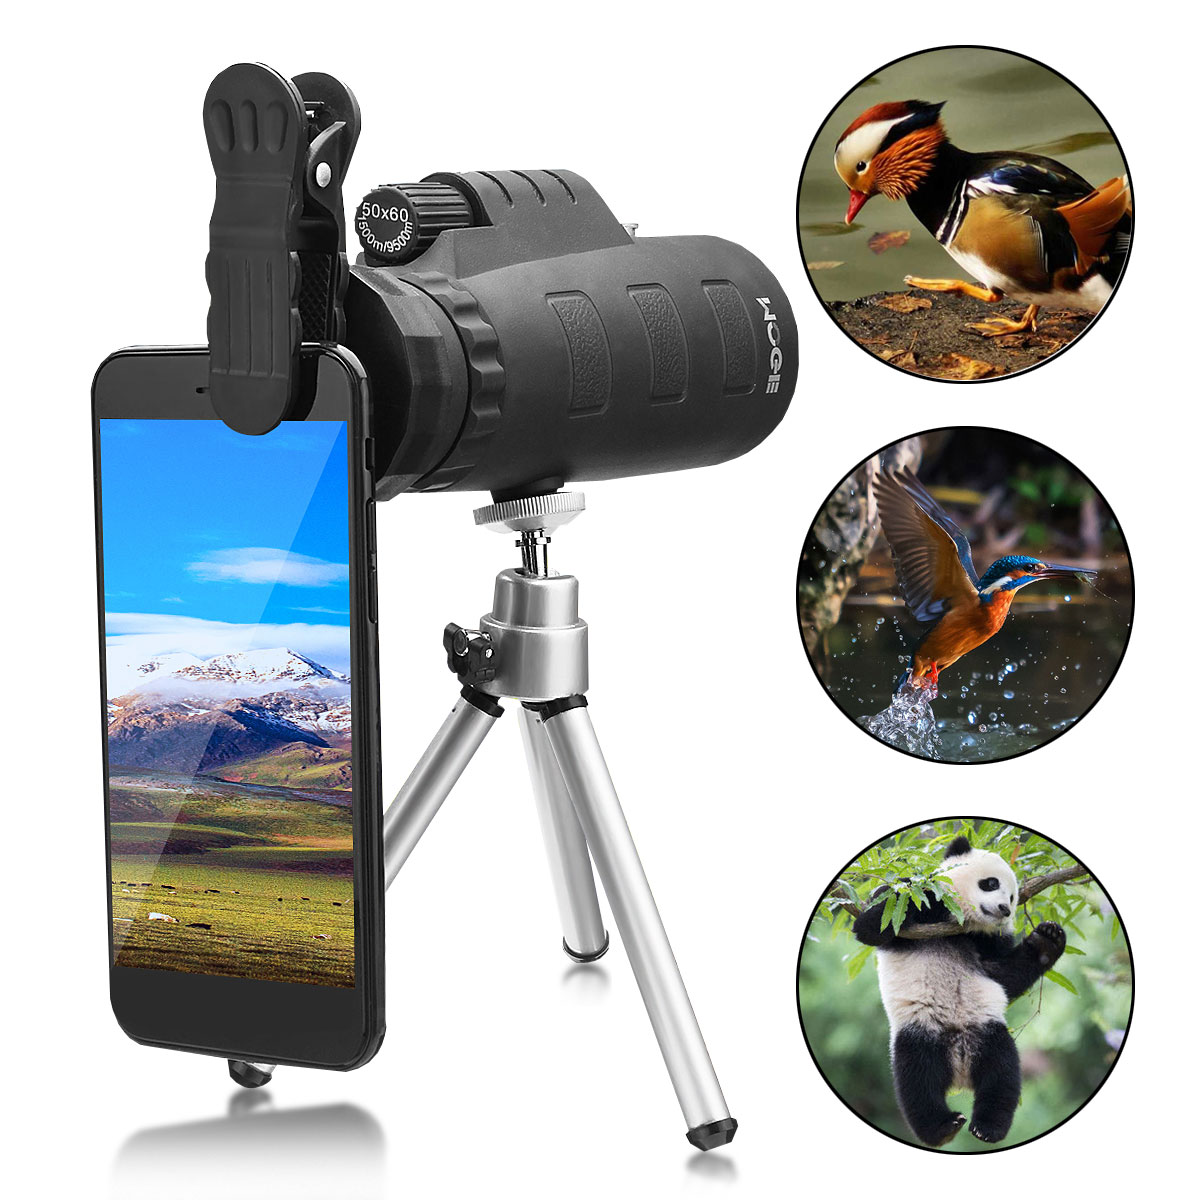 50X HD Zoom Night Vision Cellphone Monocular Telescope Hunting Camping + Clip + Tripod For Mobile Phone Smartphone Outdoor Sporting